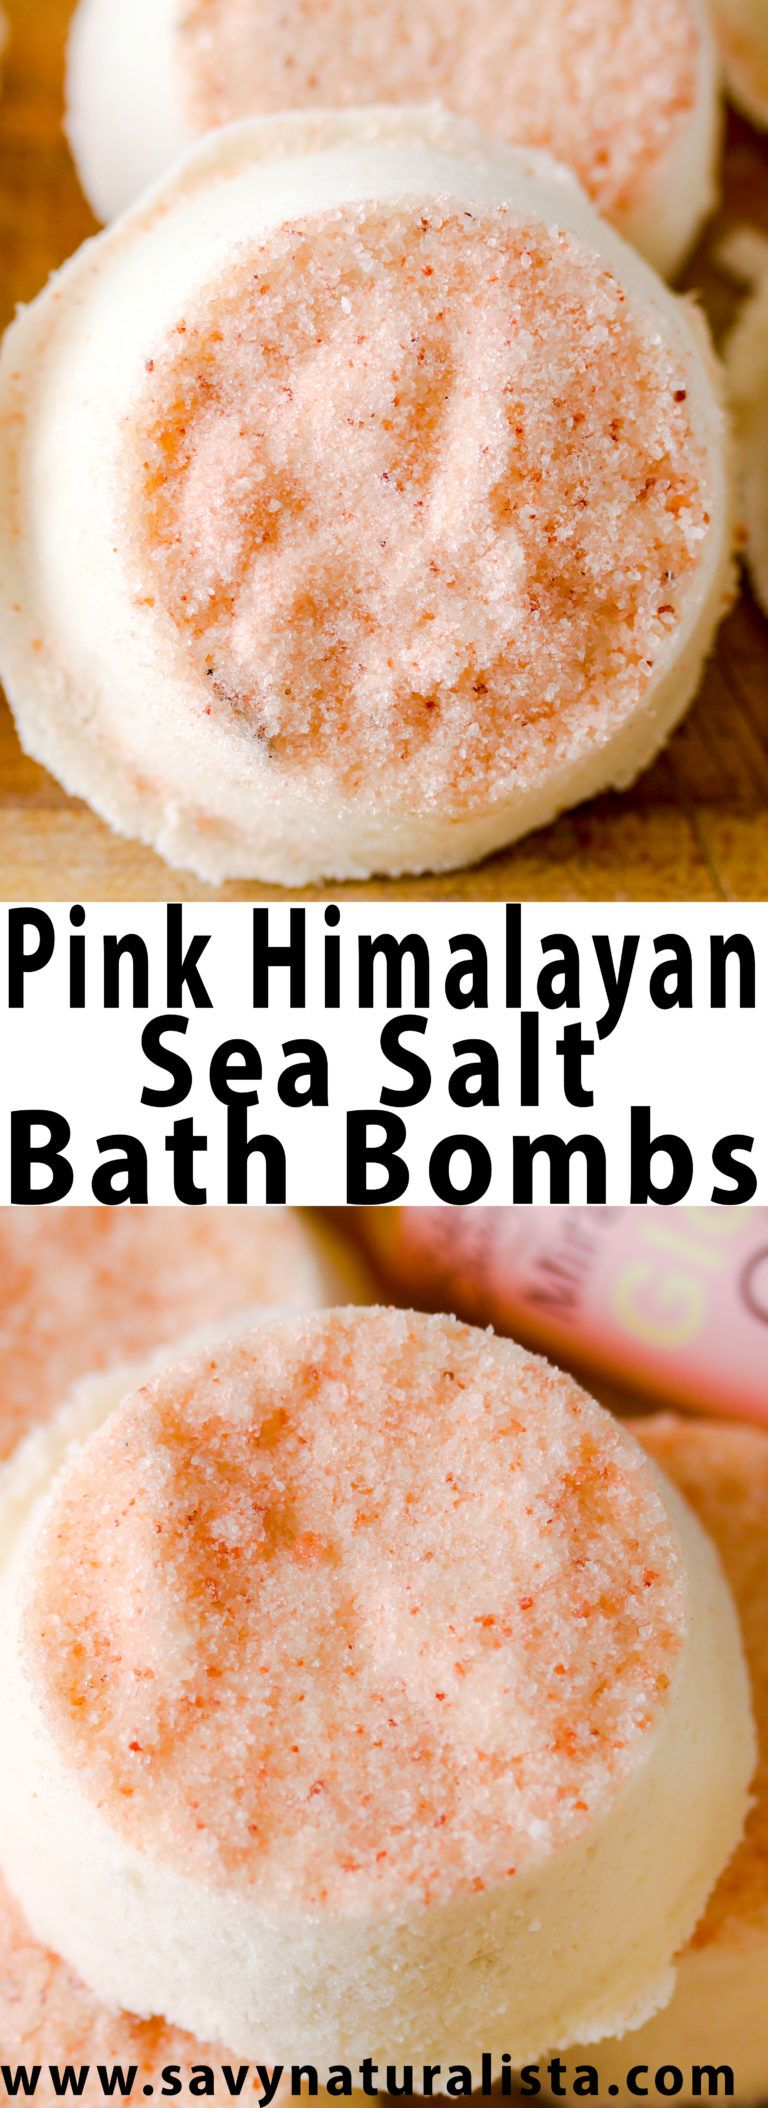 Made with all-natural Pink Himalayan Sea salt, these bath bombs are easy to make and only require a few ingredients for an all-natural full body detox.